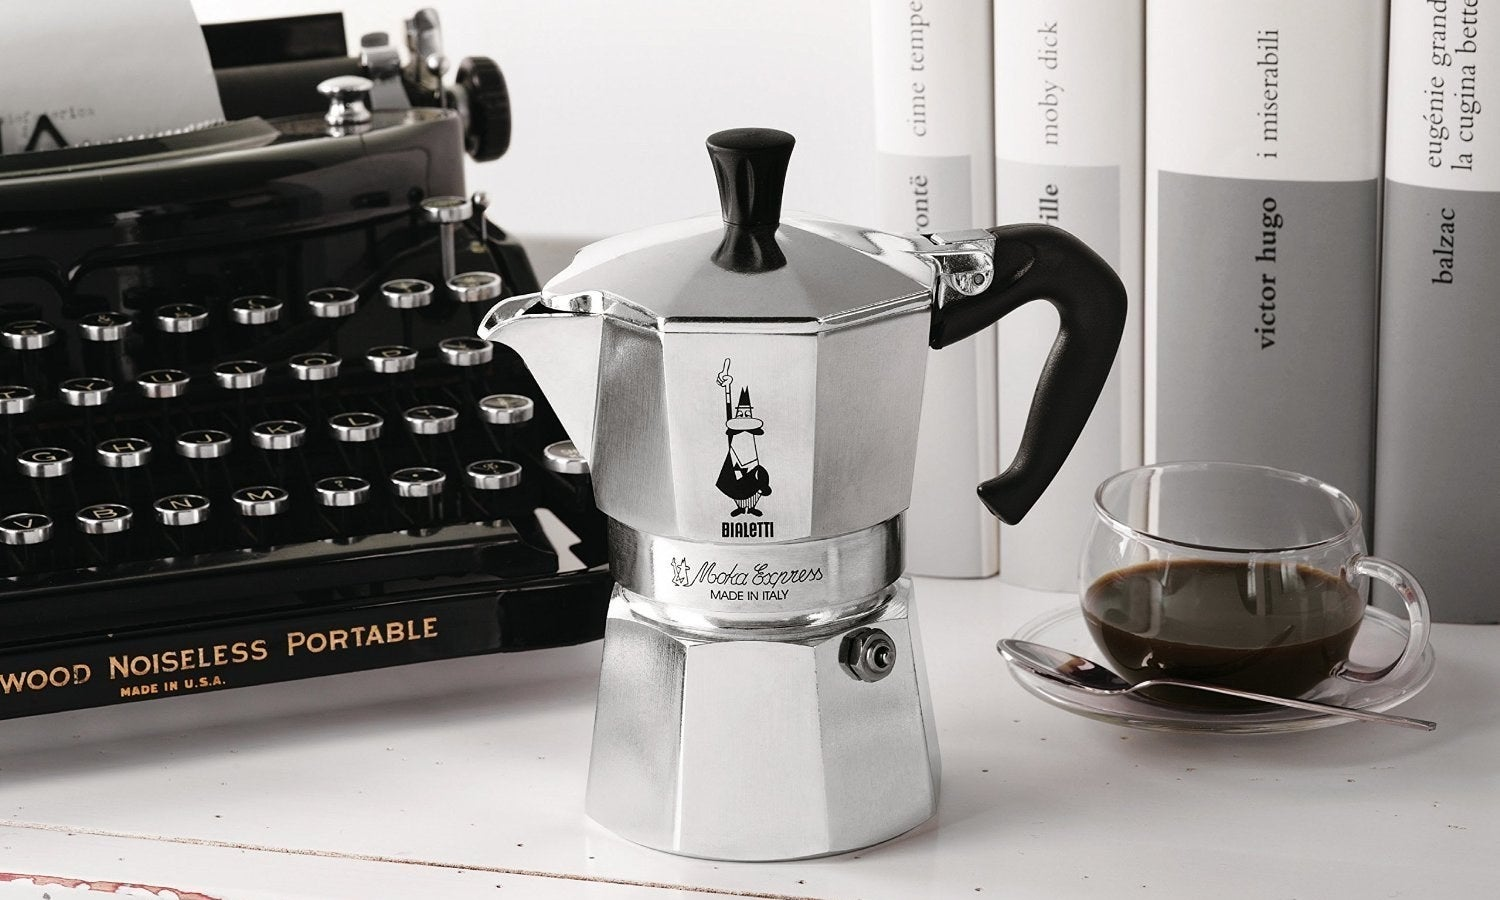 """Get it from Amazon for $39.99 (available in six colors; also available in a larger size).Promising review: """"We ditched every fancy coffee/espresso maker years ago in favor or our Bialetti stovetop espresso maker. I get a hot, strong espresso in two minutes, and there is something hands-on satisfying about making an espresso with such simplicity. This is an inexpensive purchase, and they last forever. I had my first one for five years, and only replaced a rubber ring ($5) once. I have both the large and standard size, and when used with a plug-in milk foamer, I make killer lattes at home every day. If you like your coffee drinks hot, the Bialetti is the way to go. Stovetop temp, vs. the alternatives (pod machines) which never make a truly hot beverage, are a pain to clean and produce a lot of waste. I highly recommend this product — it's my favorite kitchen item."""" —Michelle Wheeler"""